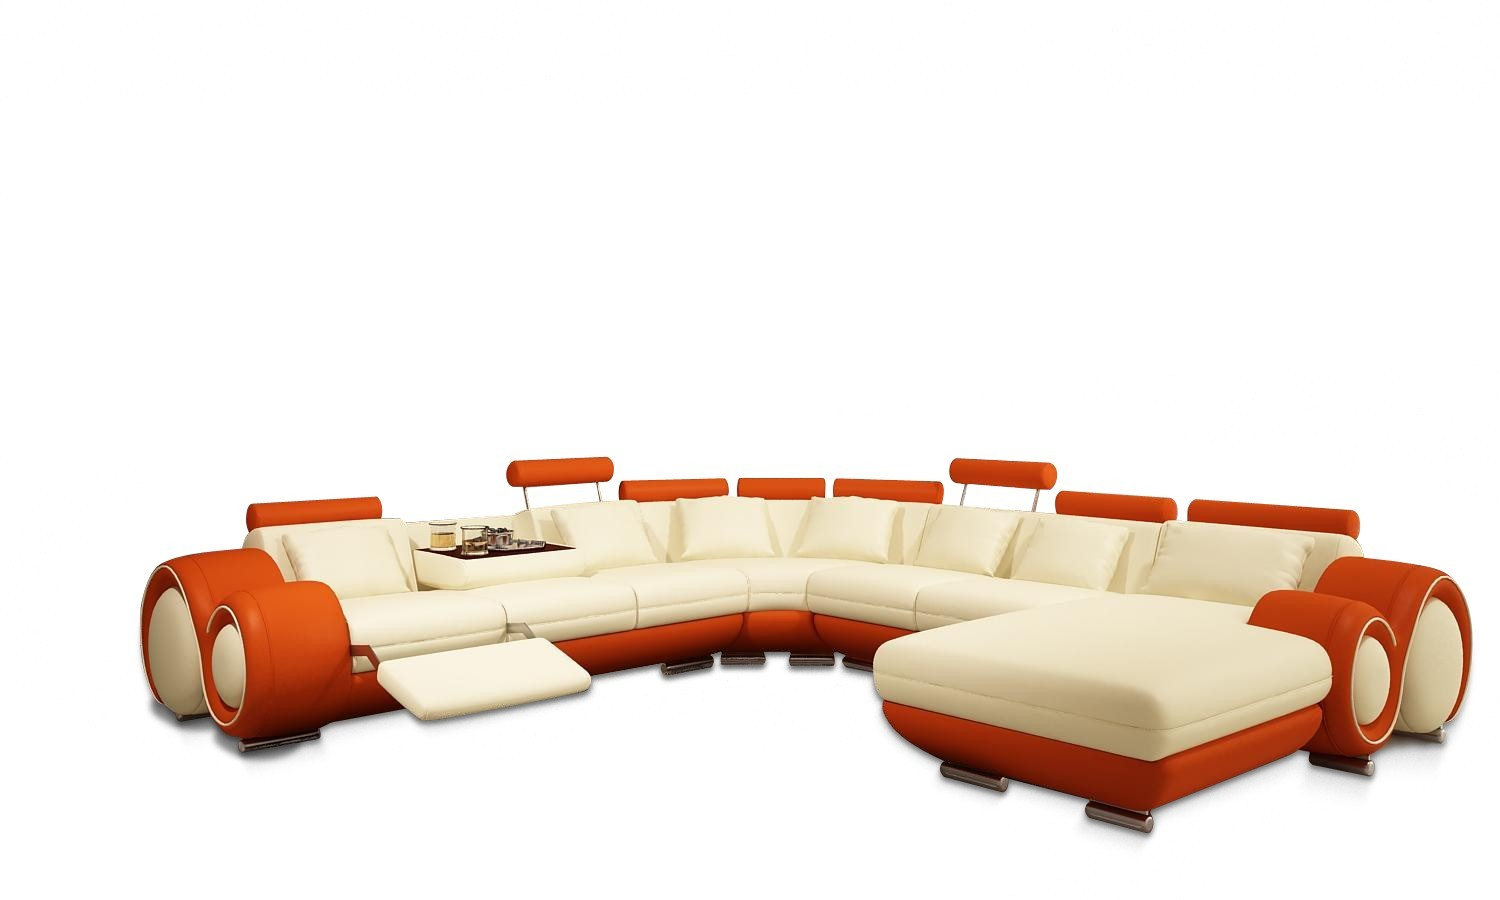 essential factors consider purchase modern leather sofa